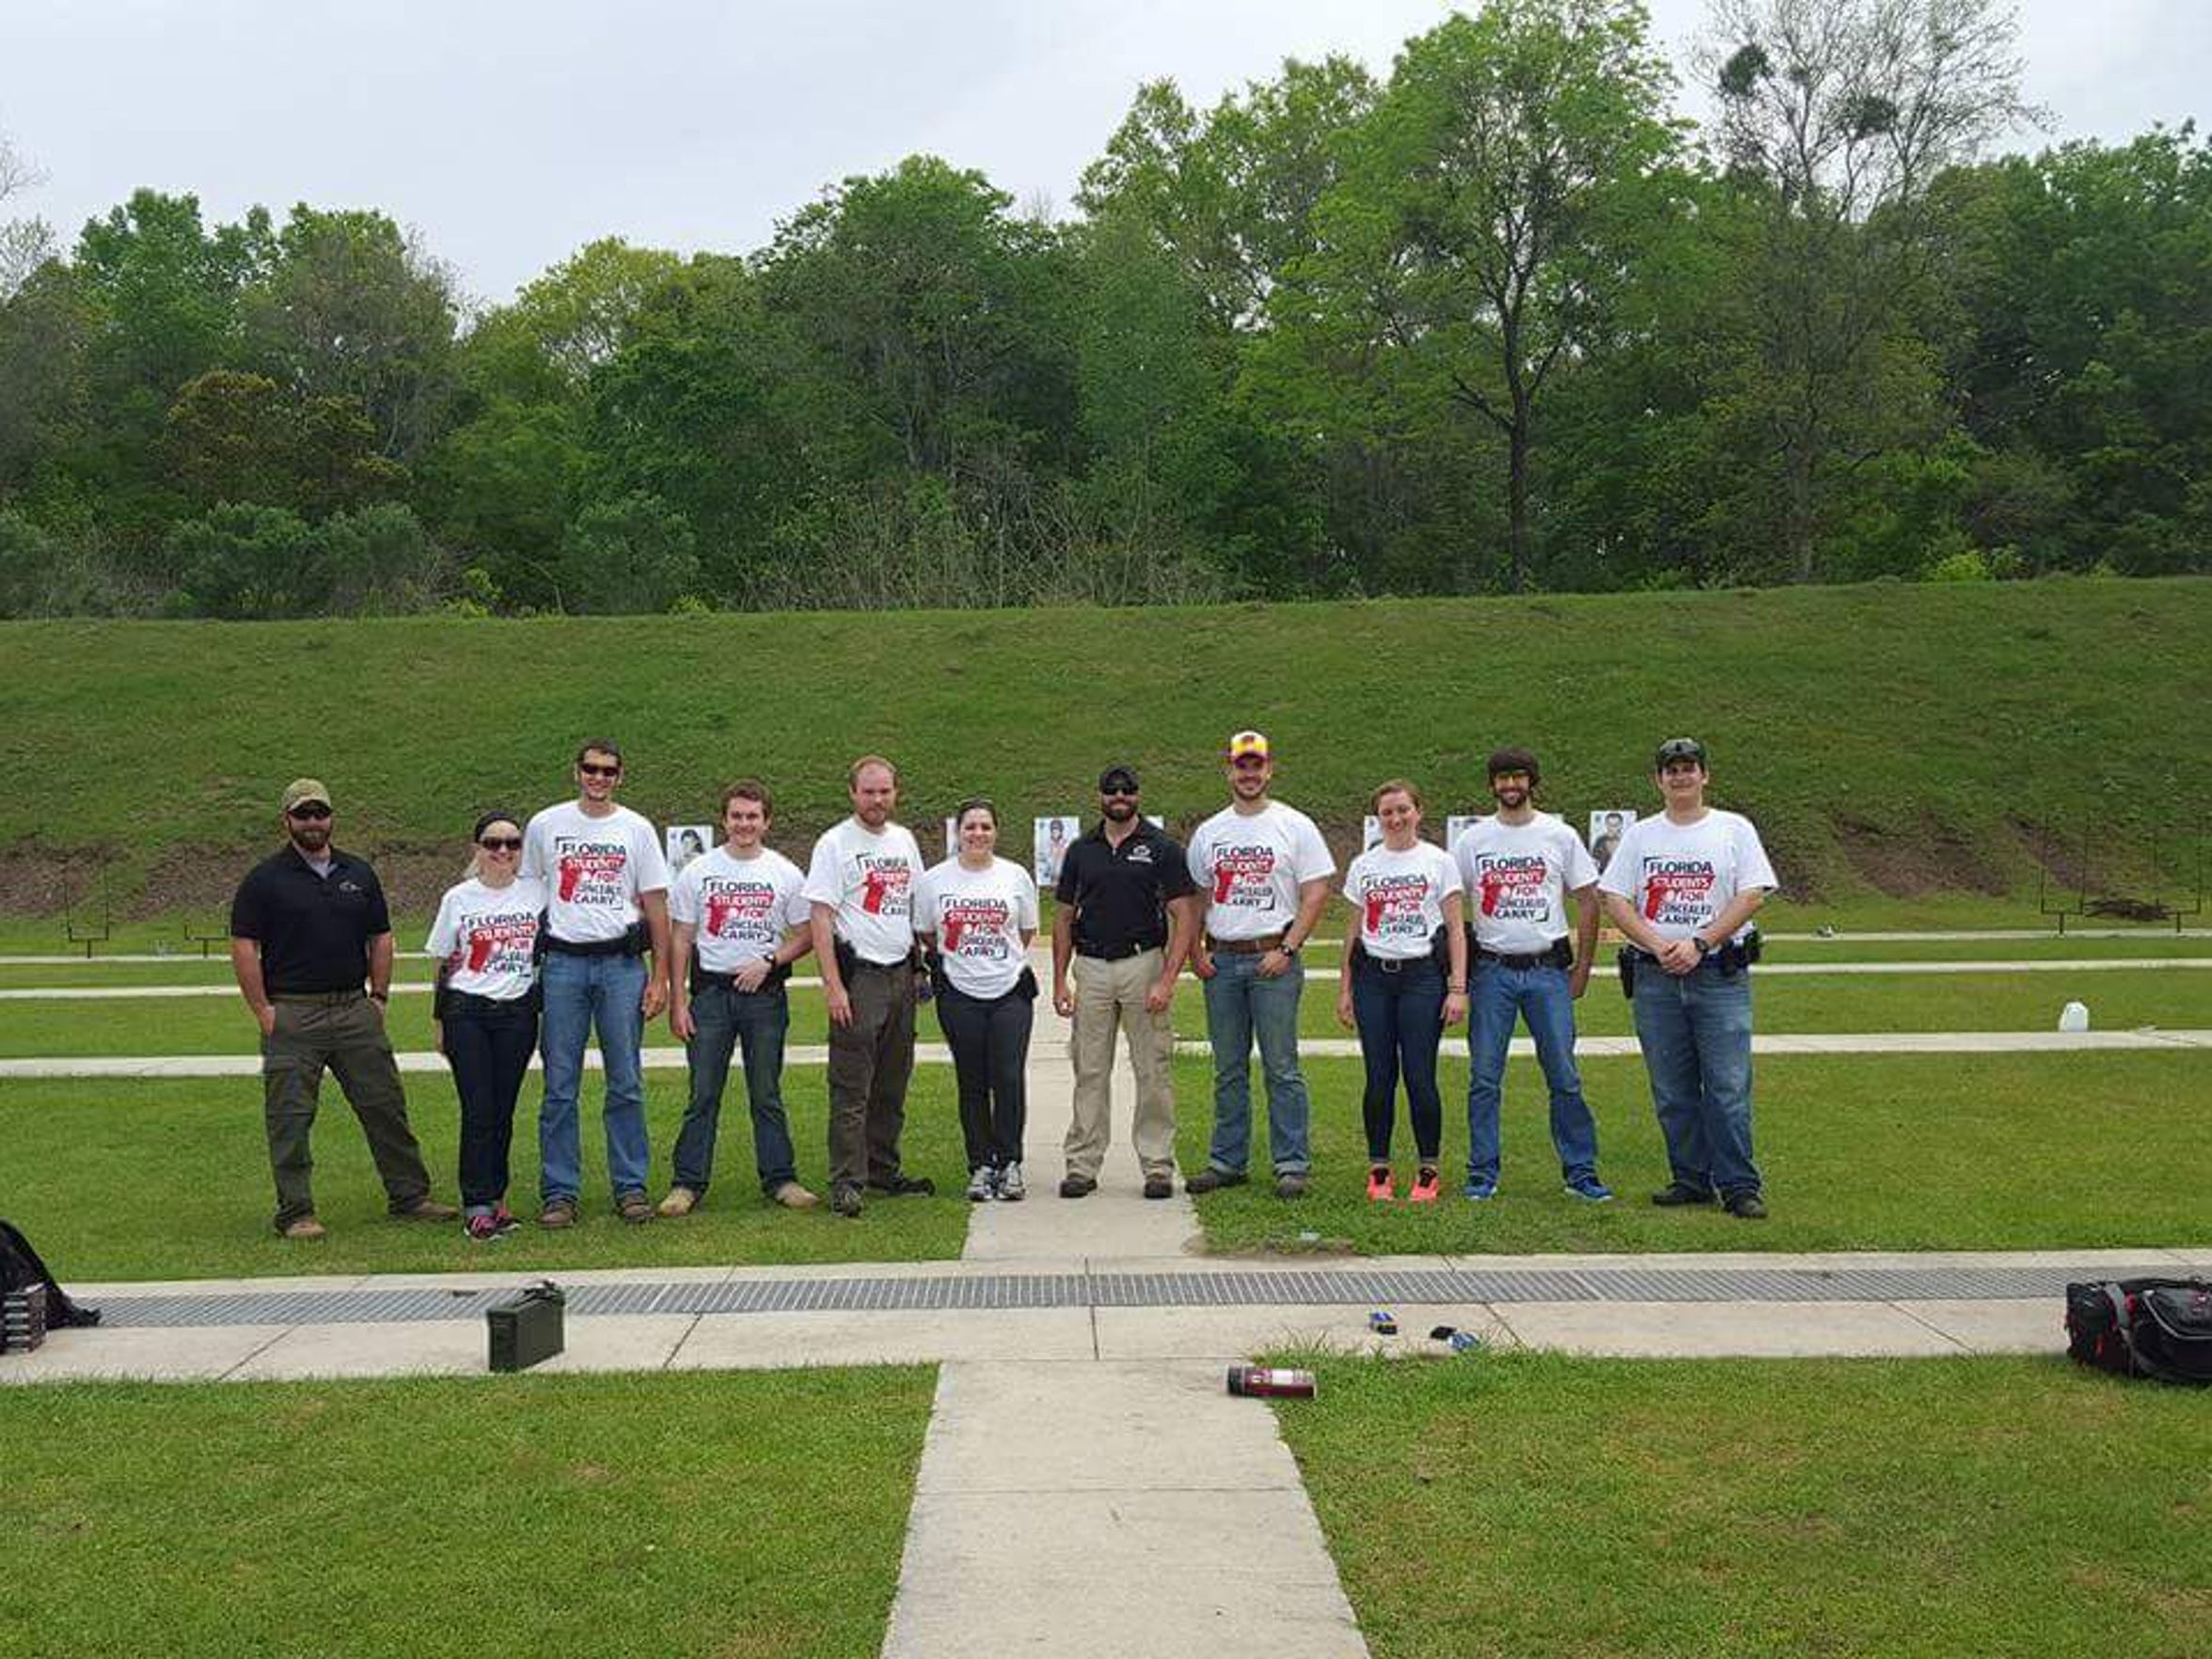 Members of Florida Students for Concealed Carry put on a tactical handgun course in March. Pictured from left to right: Instructor Kelly Kraus, Brandon Woolf, Alex Stewart, Joshua Hargrove, Bekah Hargrove, Instructor Steve Landgraf, Lauren Riner, Thomas Sullenberger and Michael Patterson.